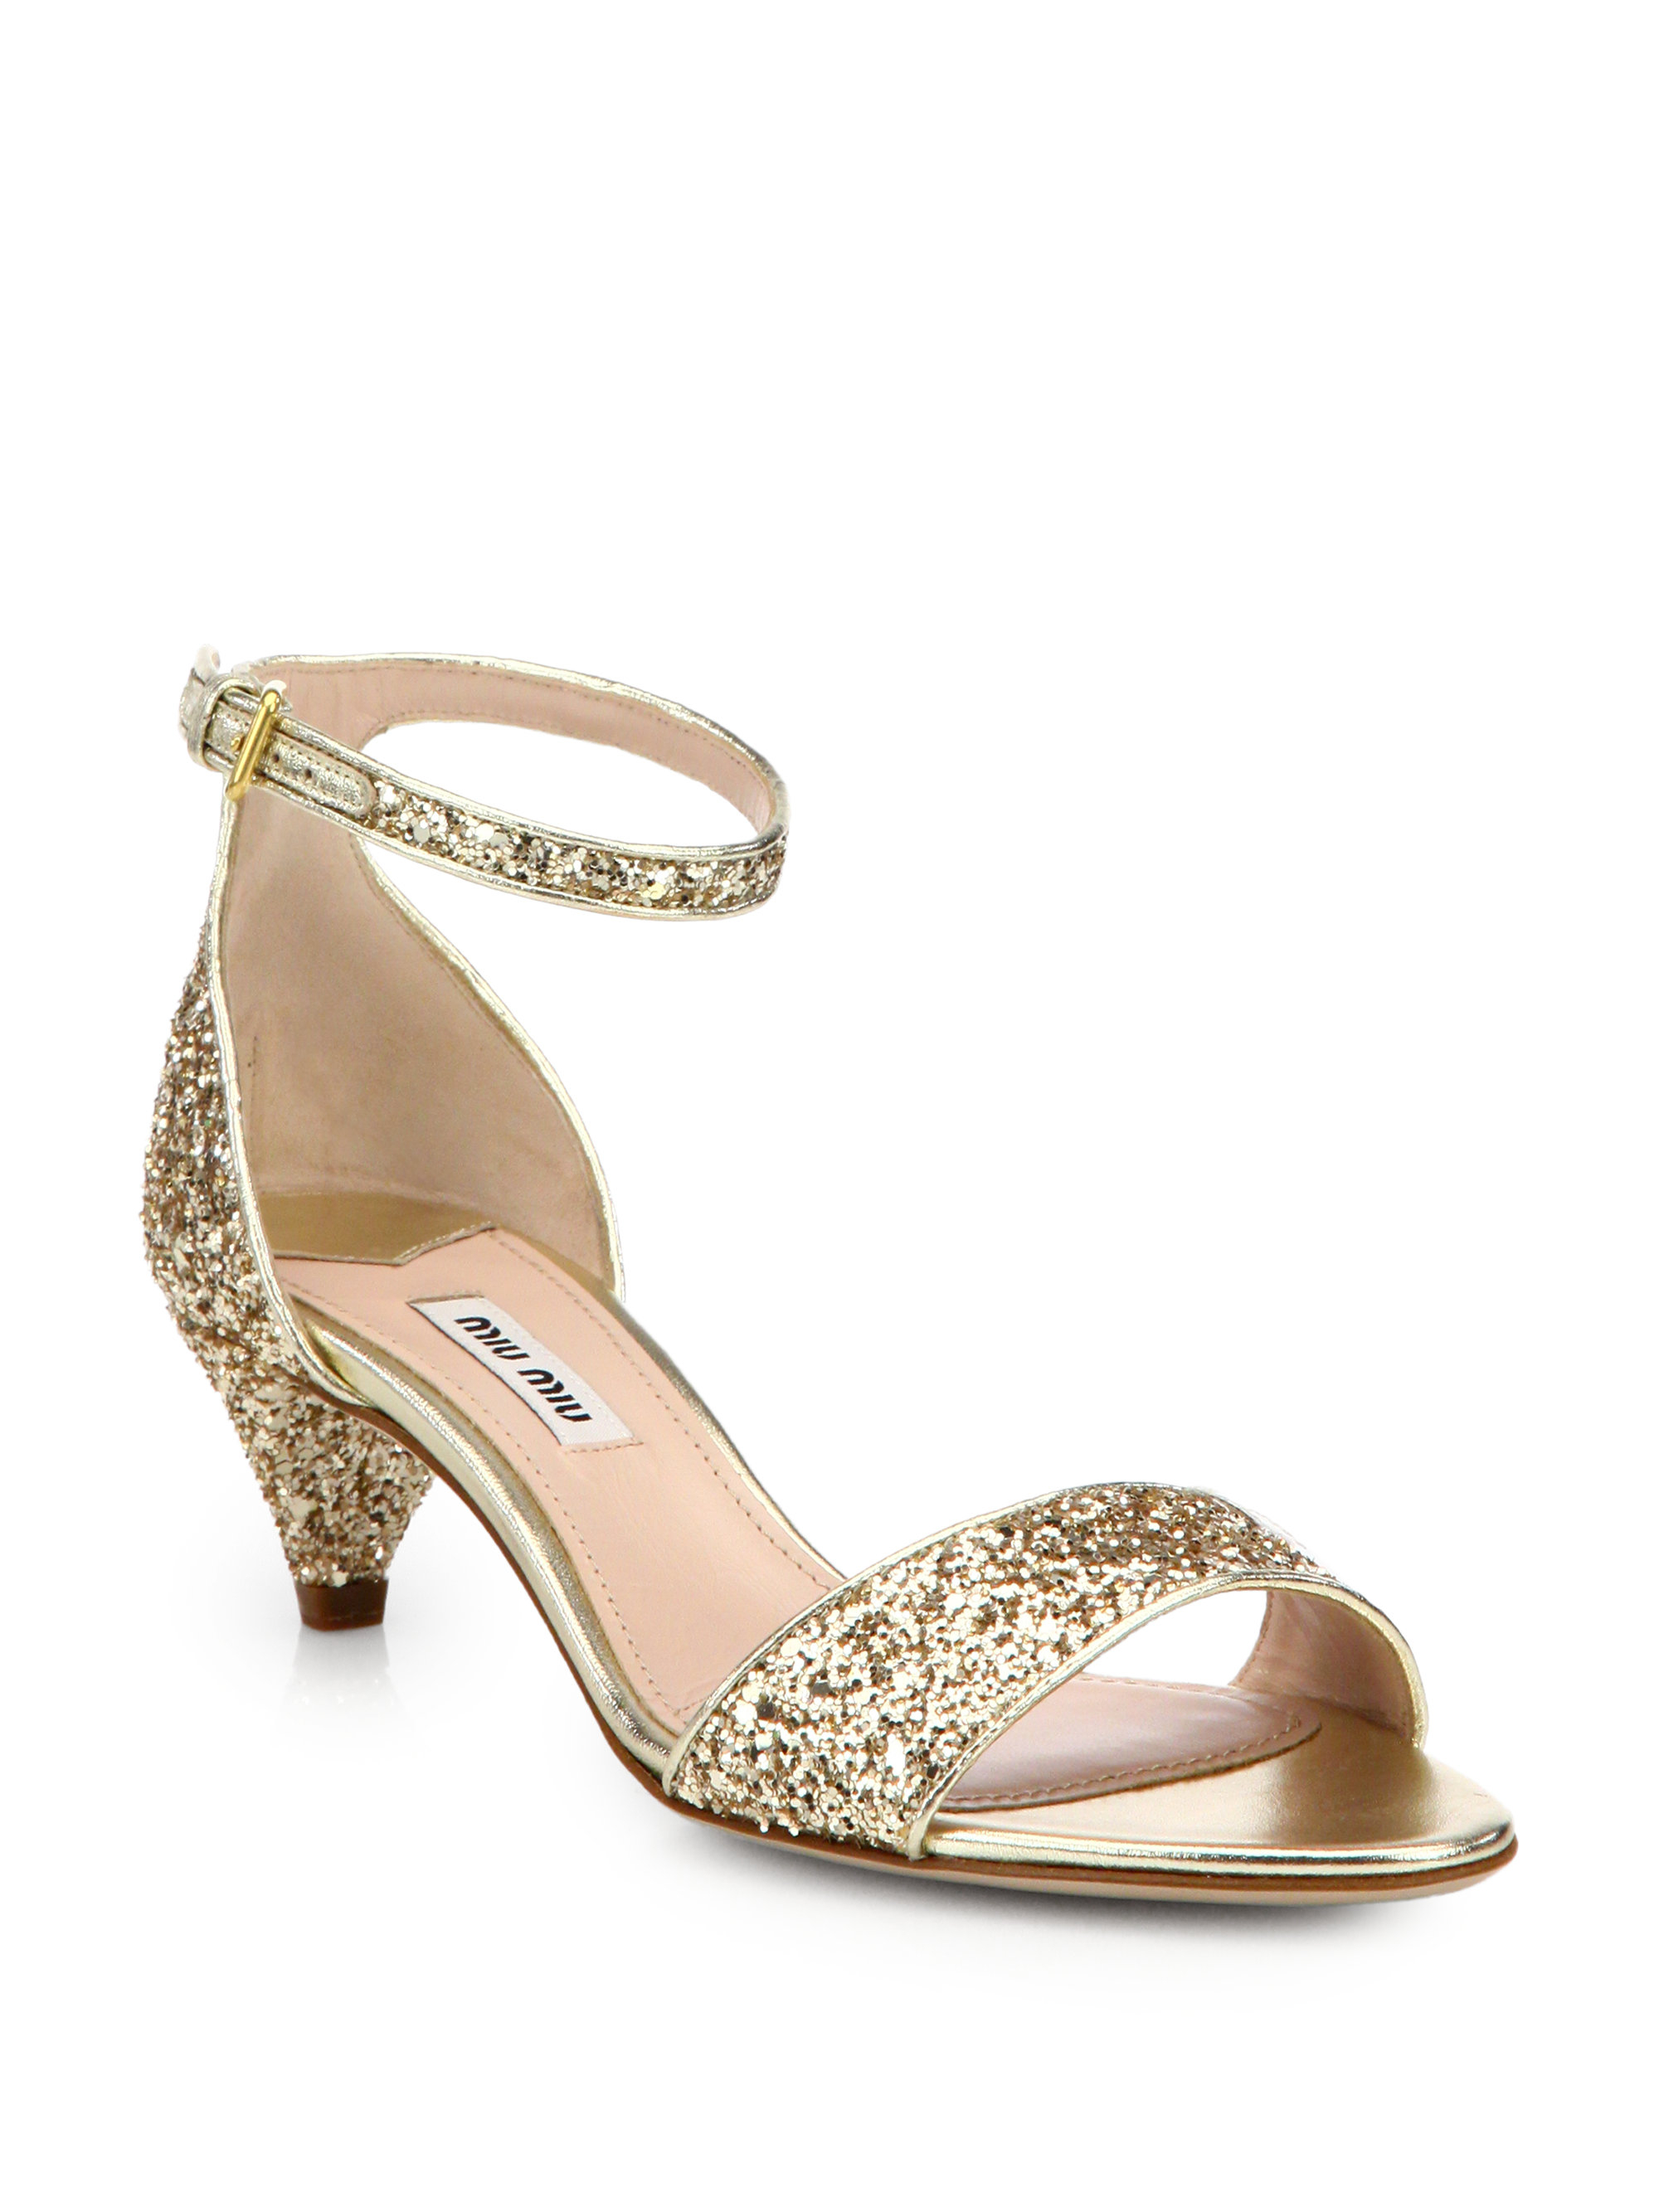 Jeweled Kitten Heel Shoes